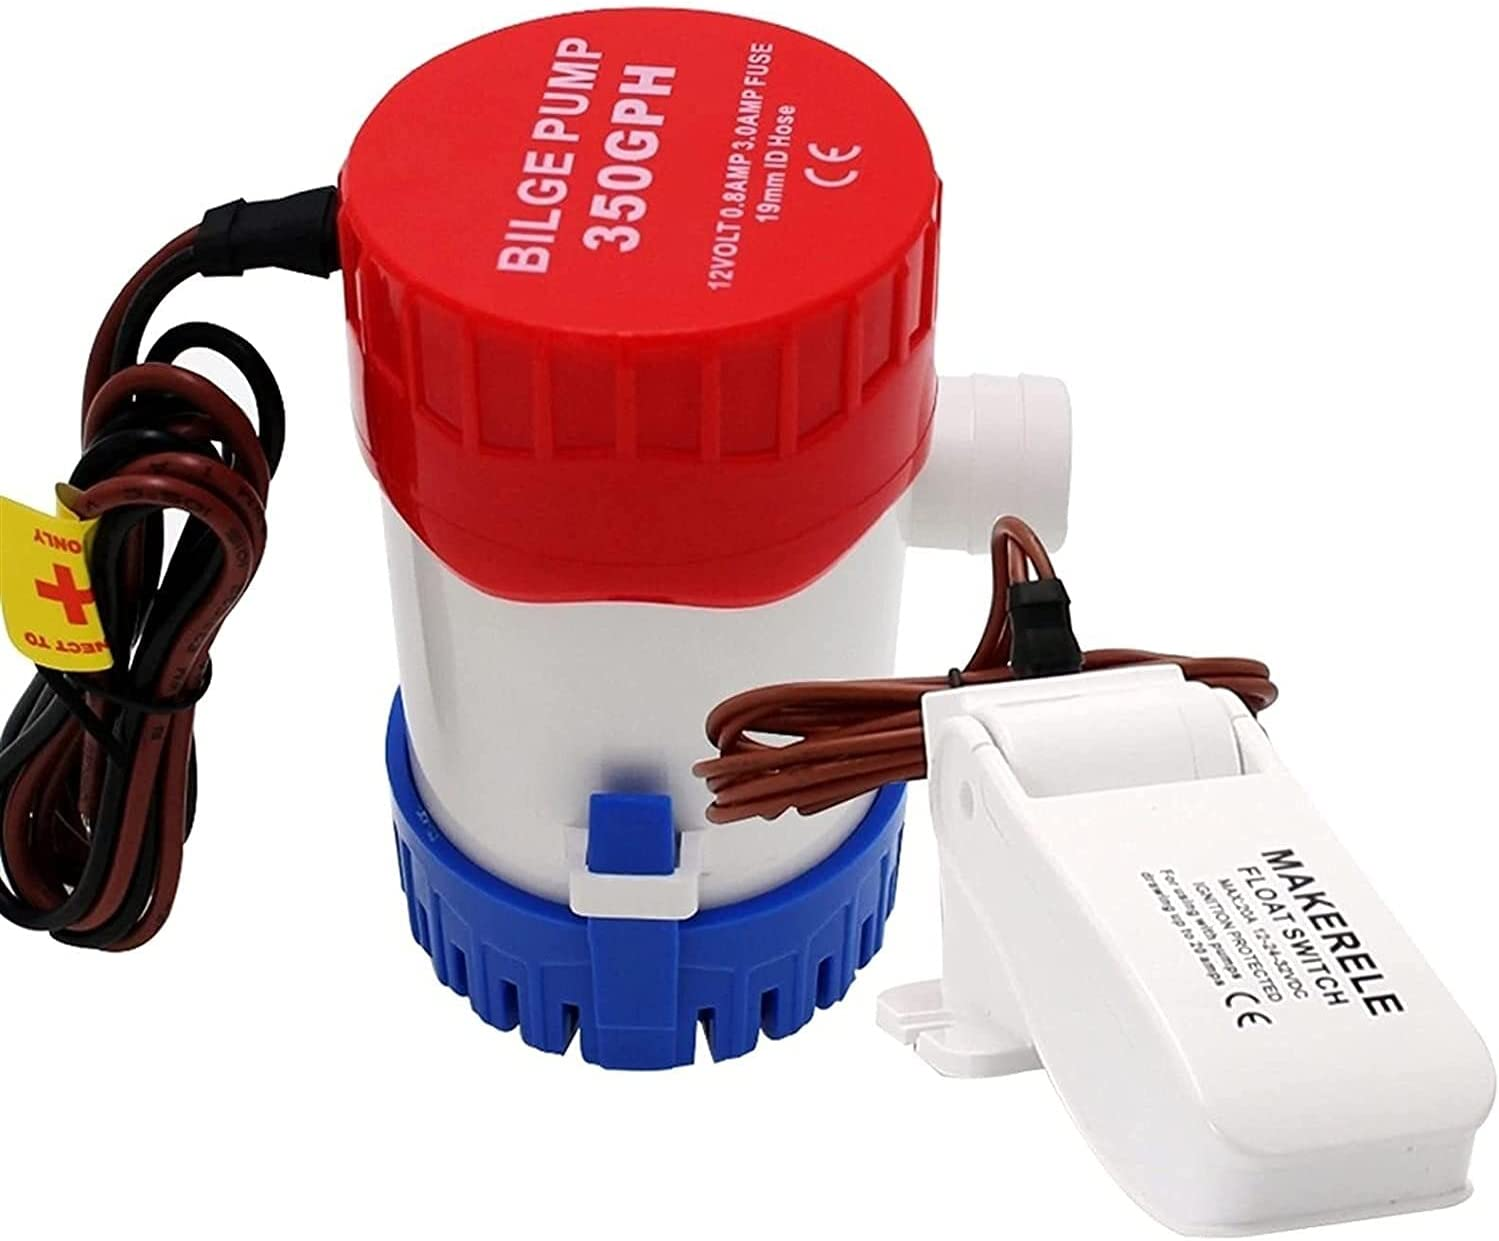 NEW before selling Great interest DAYDAY helper Automatic Submersible Small 35 24V Boat Bilge Pump